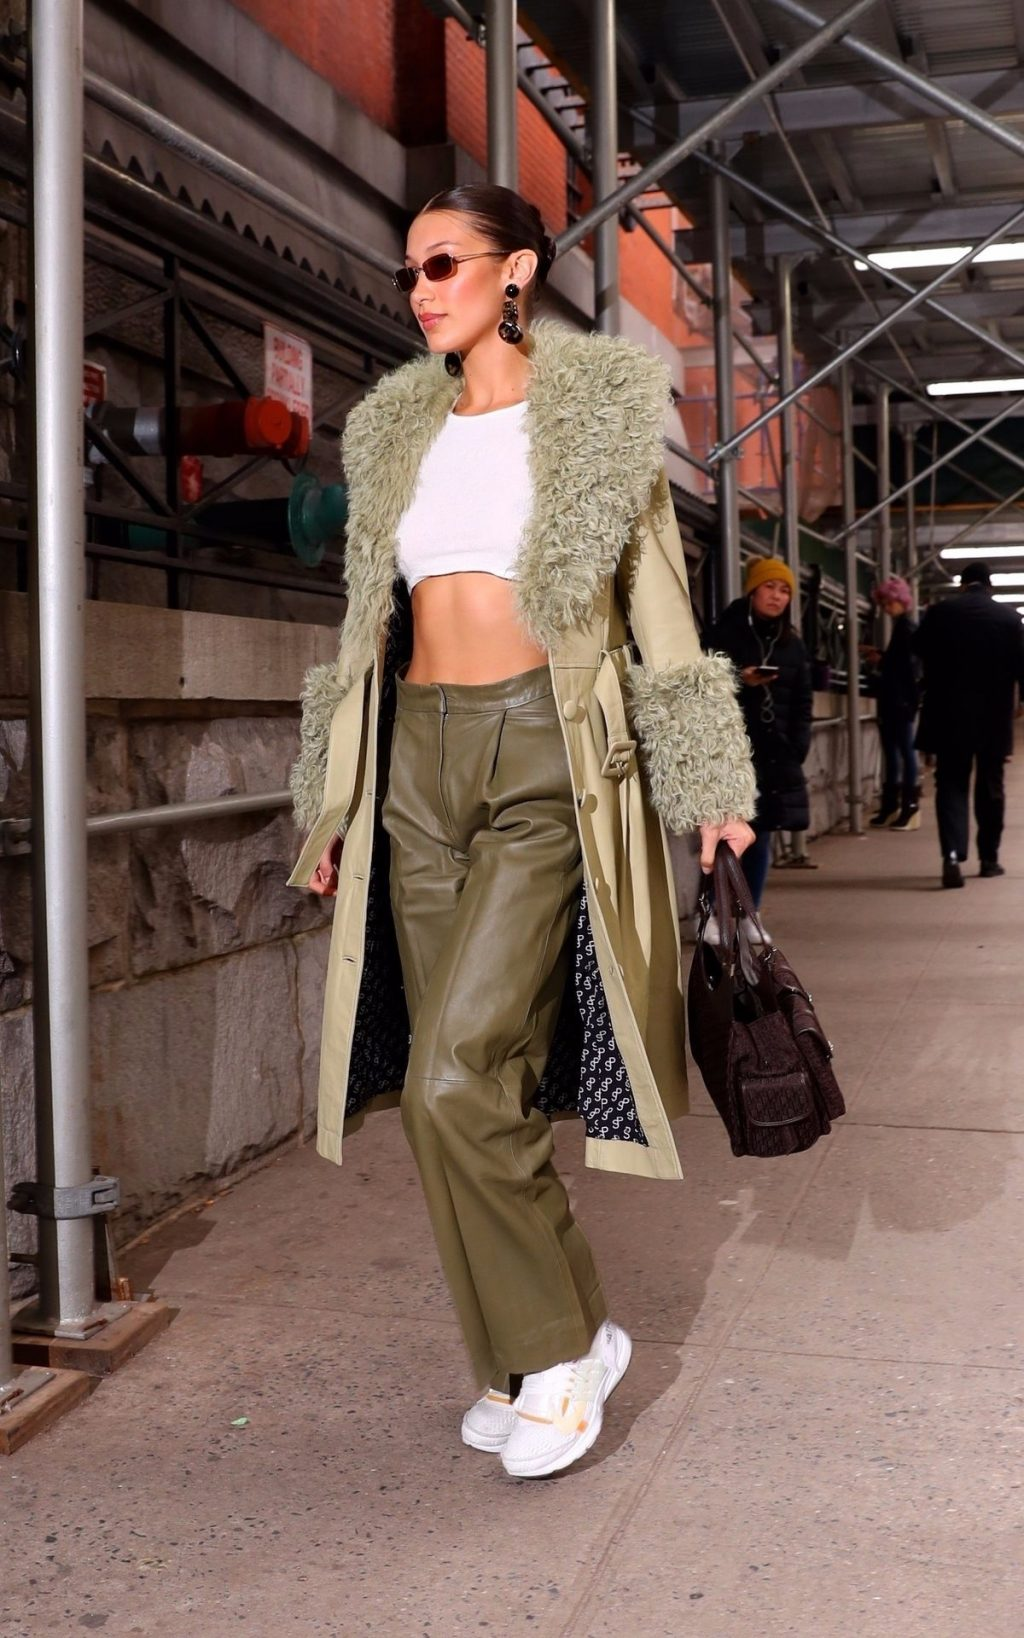 Bella Hadid See through The Fappening Blog 29 1024x1638 - Braless Bella Hadid Arrives at the Park Avenue Armory for the Marc Jacobs Fashion Show (59 Photos)